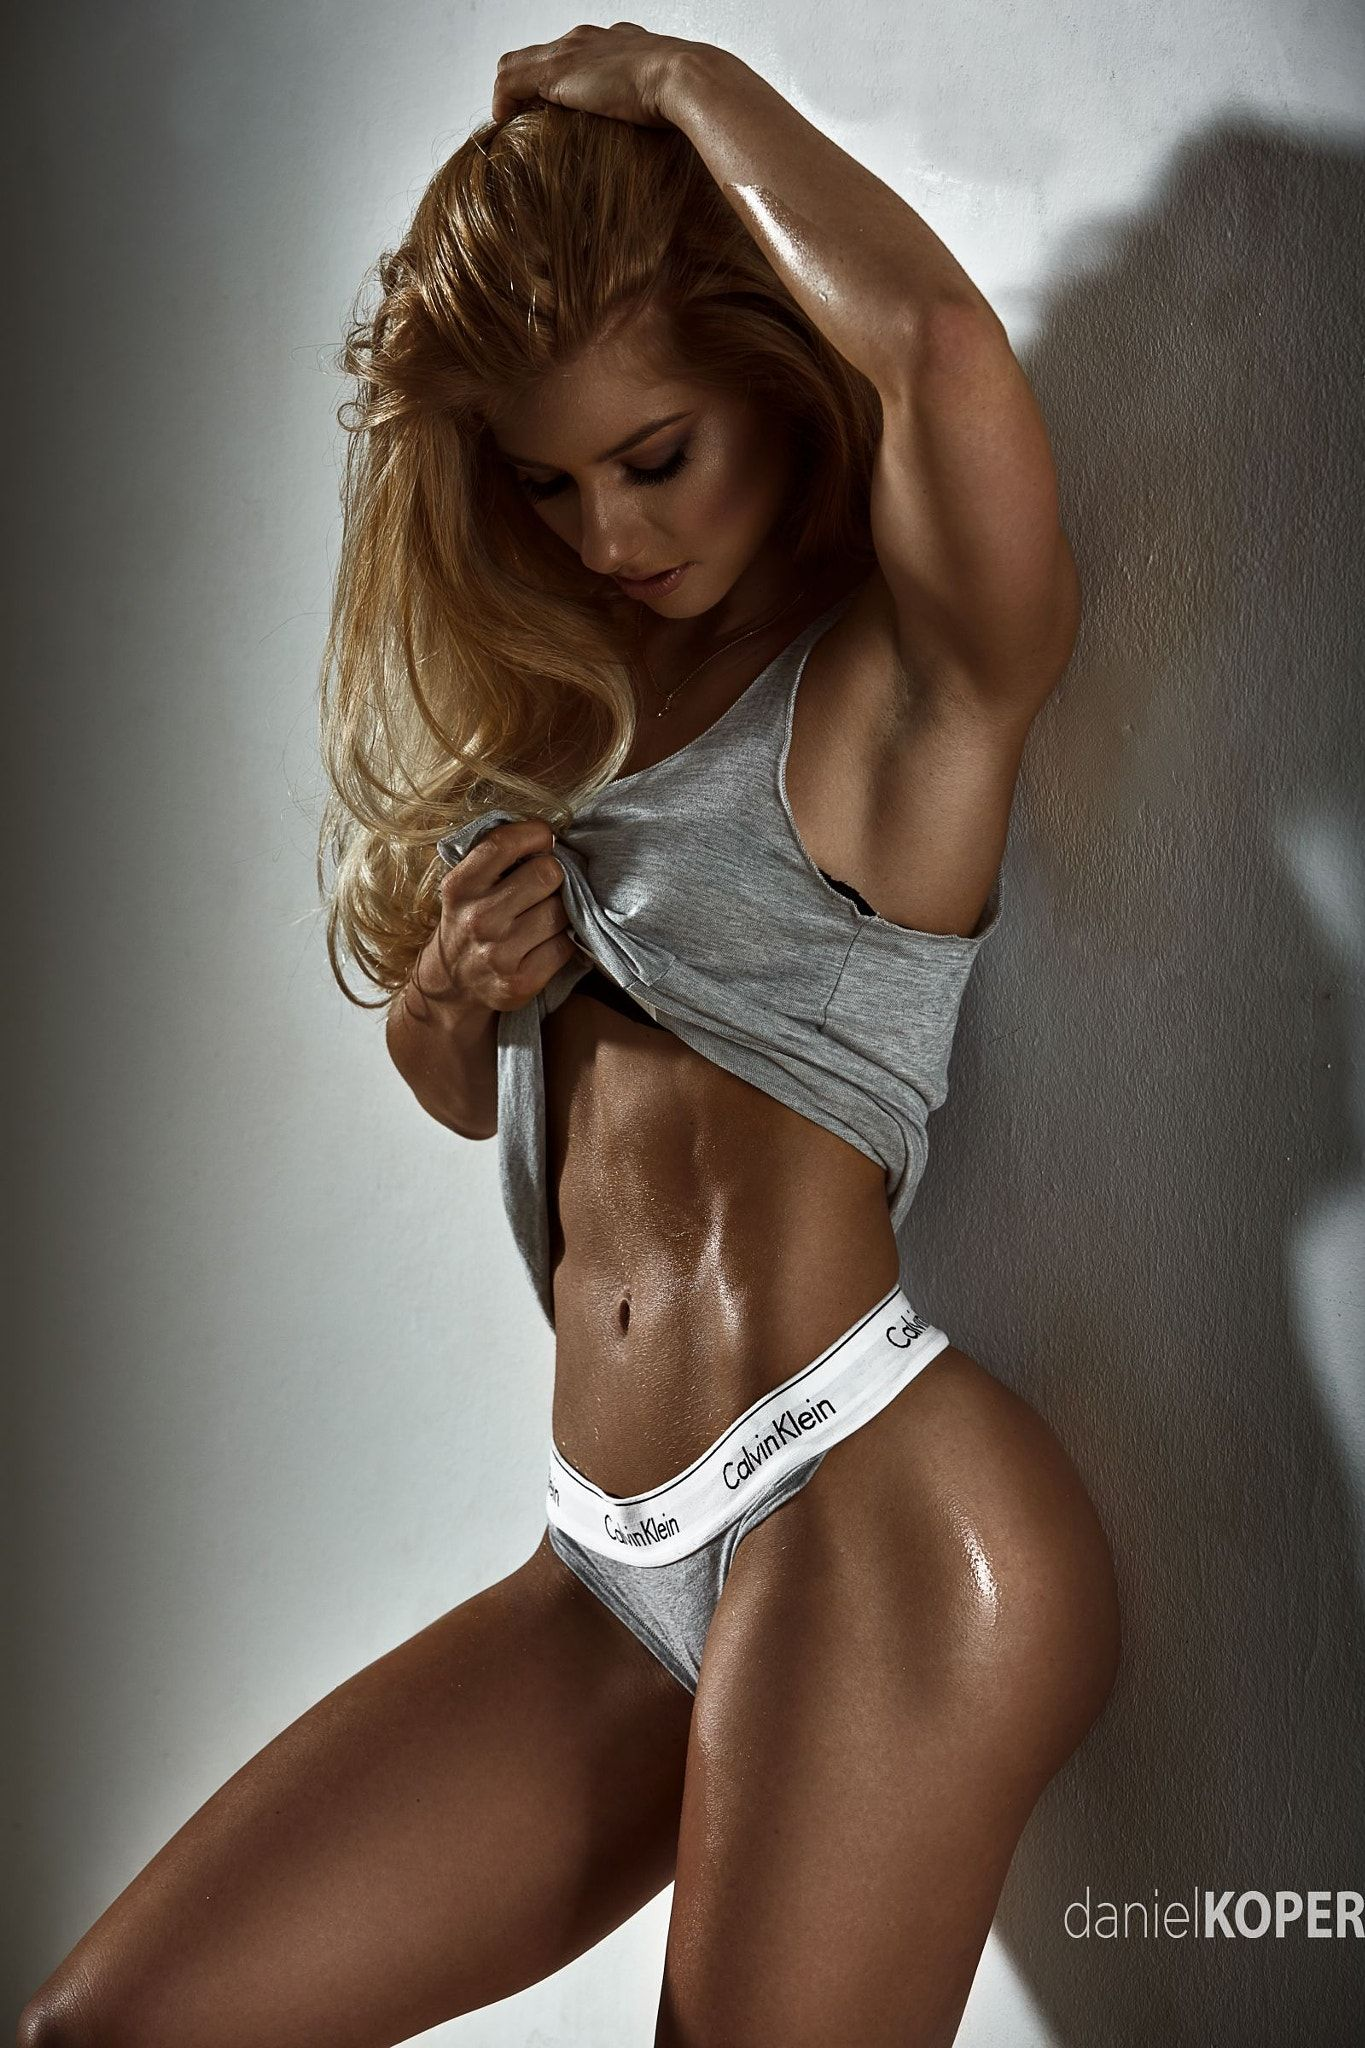 Nude Sports Girls Female Bodybuilders And Fitness Women